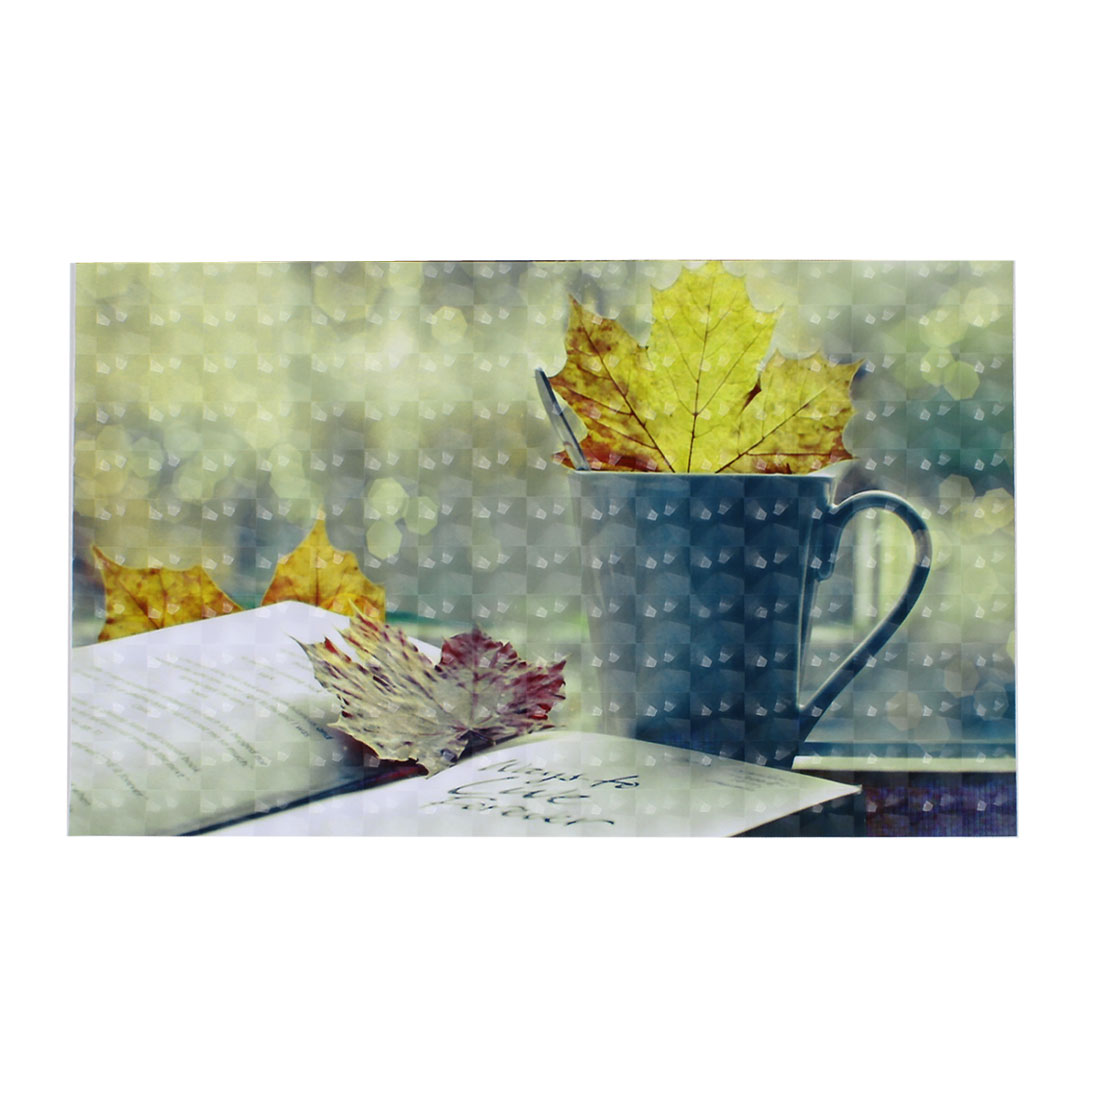 "Cup Book Maple Leaf Pattern 3D Decorative Sticker Decal for 15"" 15.4"" Laptops"